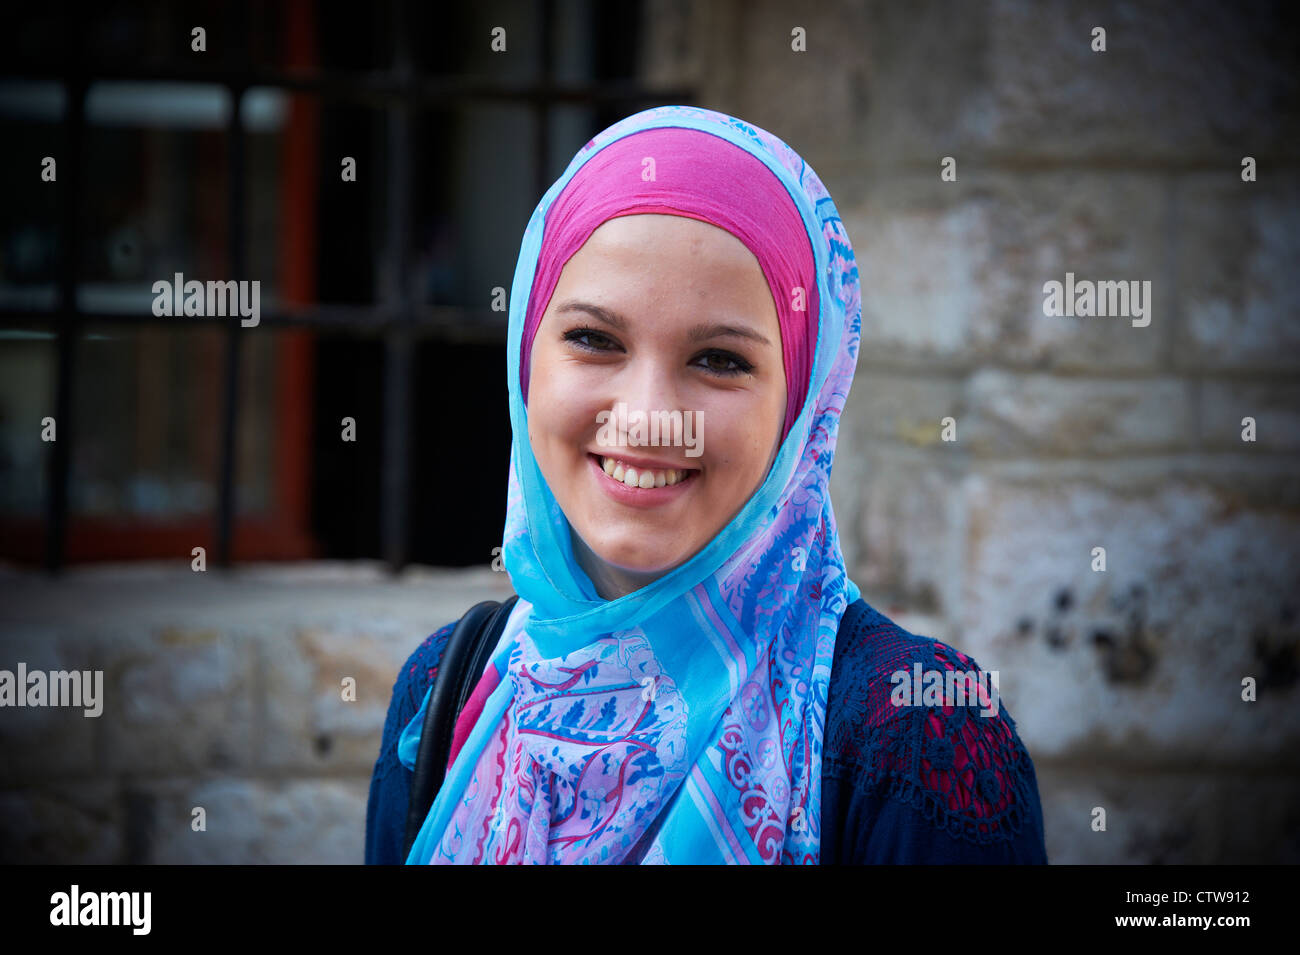 cataula muslim single women Muslim dating in ca, united states searching for a compatible match : available only hi 1/2 palestinian, 1/2 white, 100% muslim available only to logged in members ayaj123 new 20, woman fresno, ca, usa.